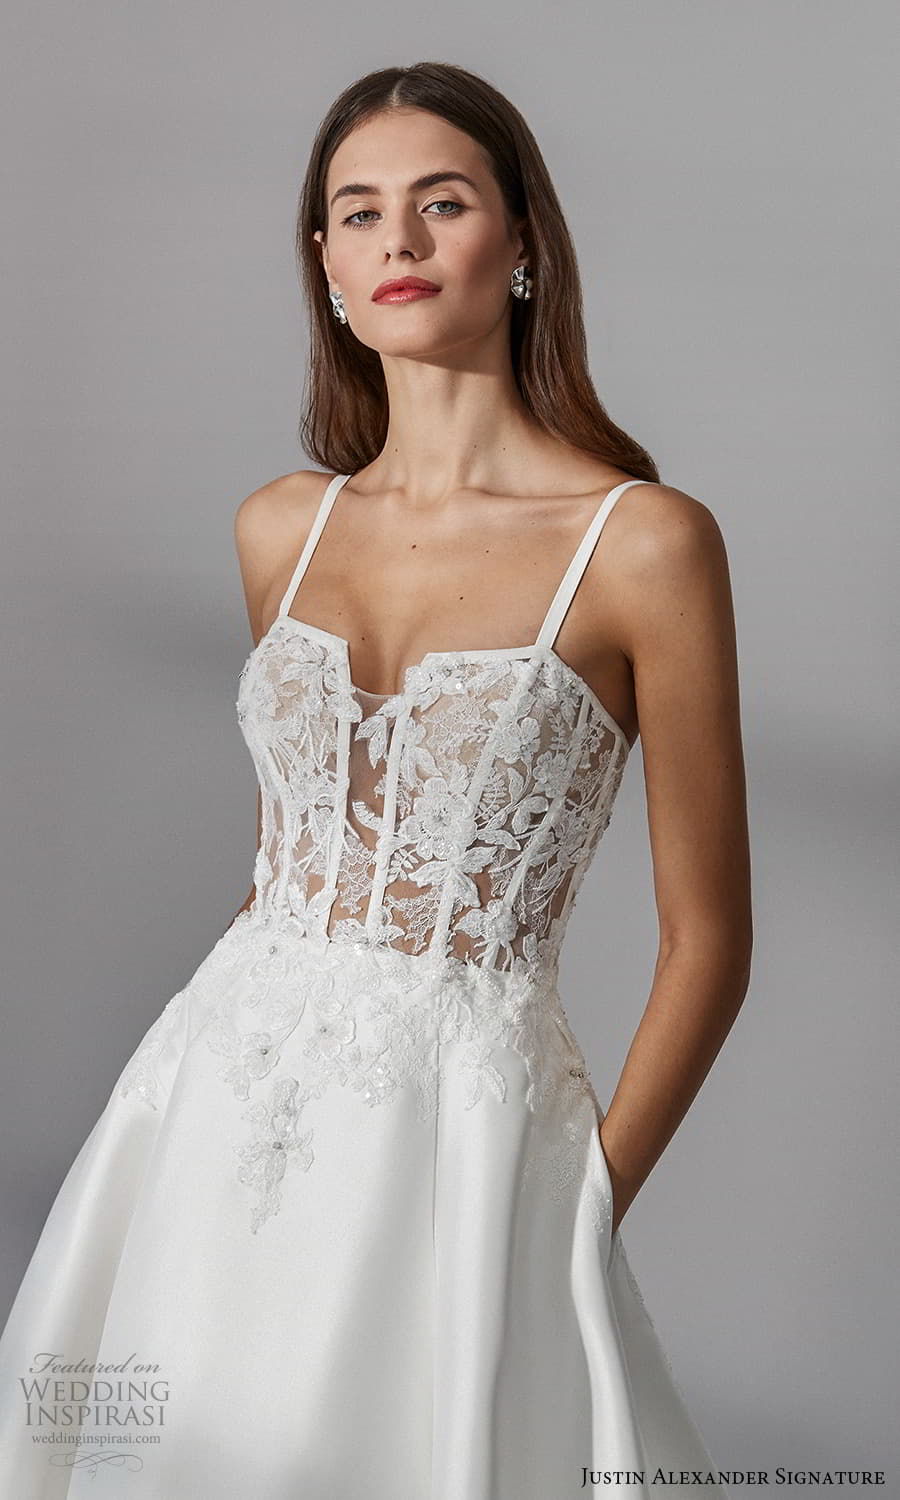 justin alexander signature fall 2021 bridal sleeveless straps square neckline embellished bodice a line ball gown wedding dress (2) zv